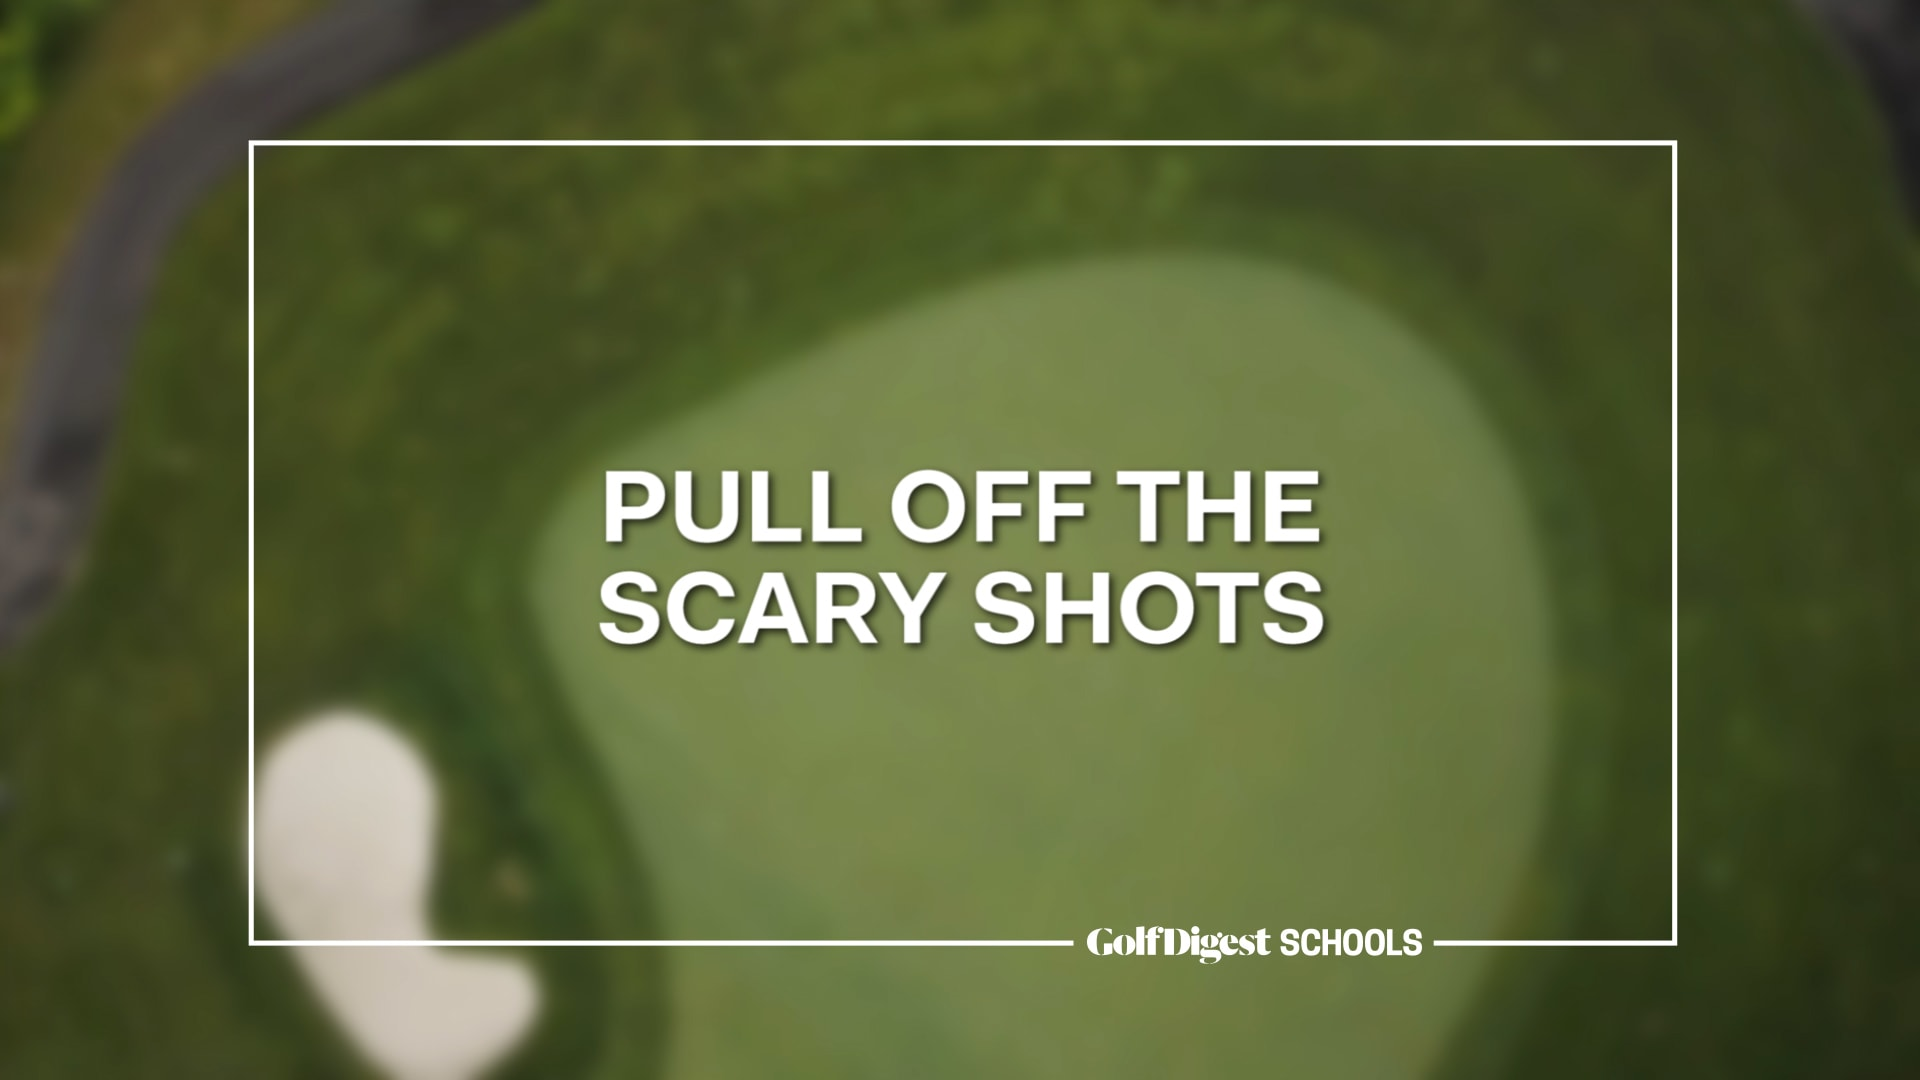 Video 5: Pull off the Scary Shots